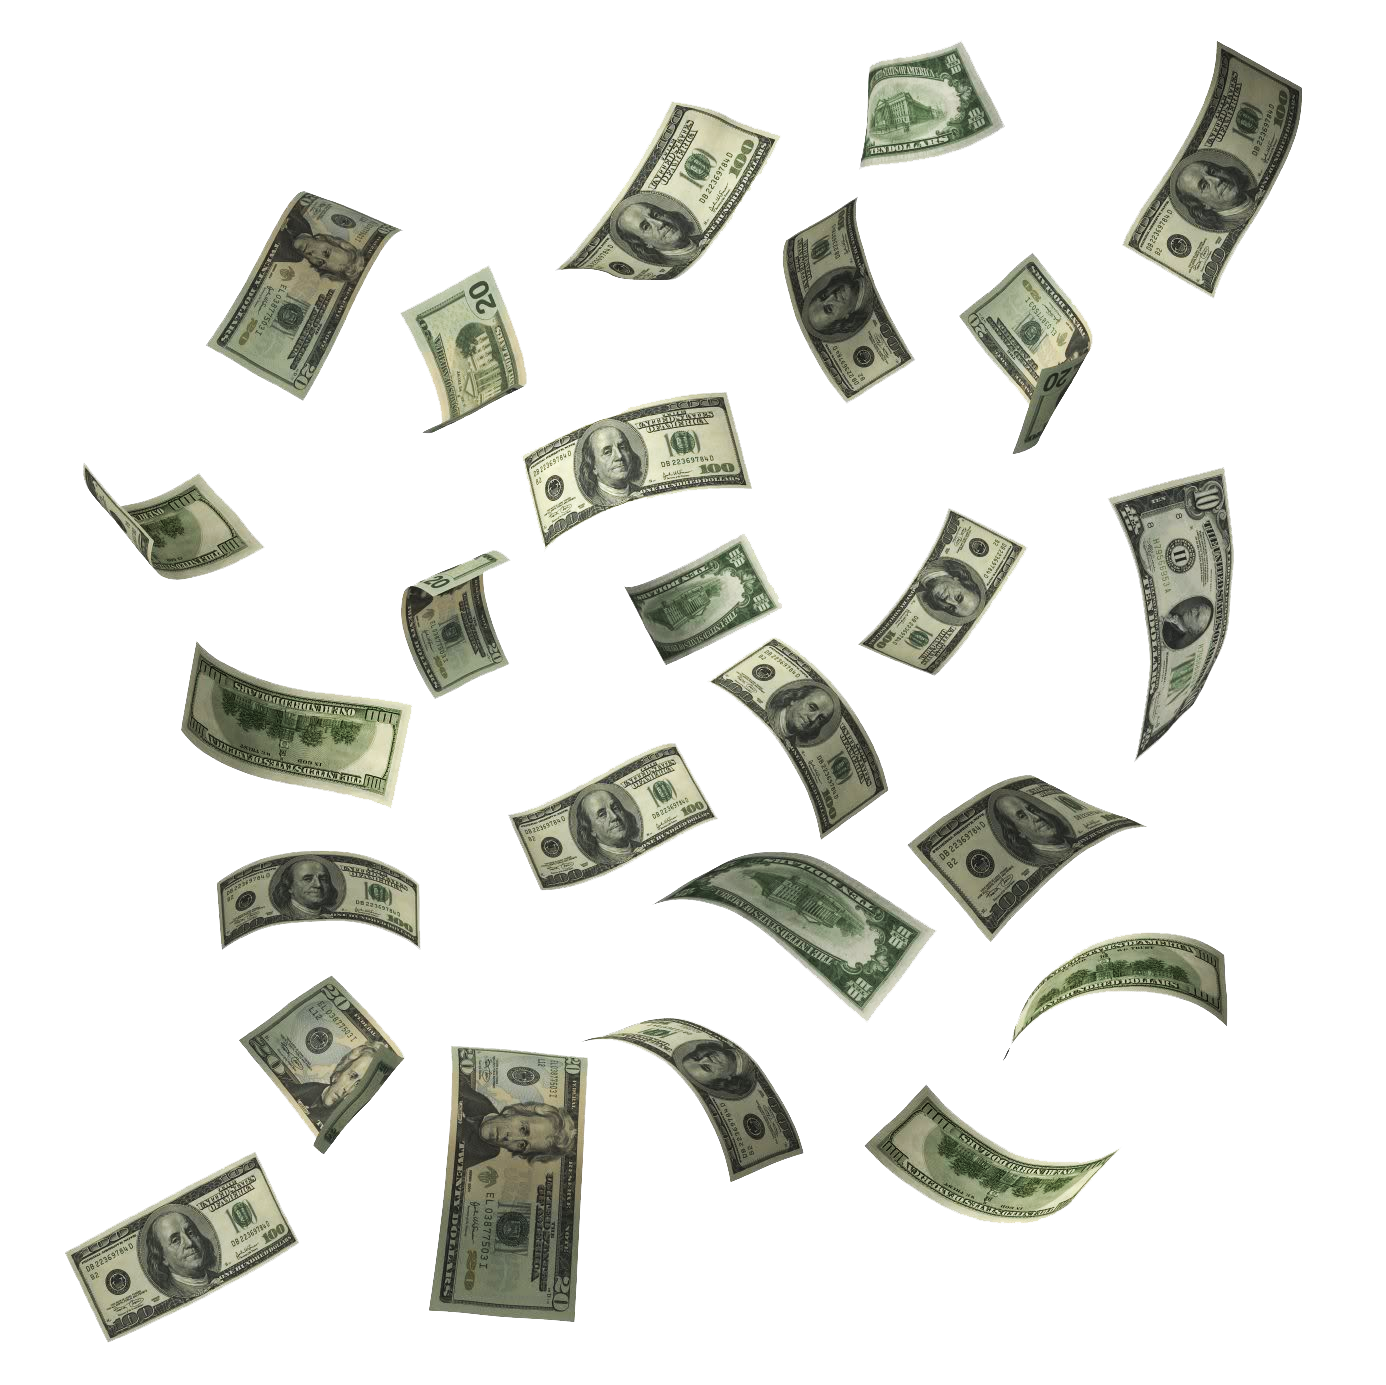 Make it rain money clipart